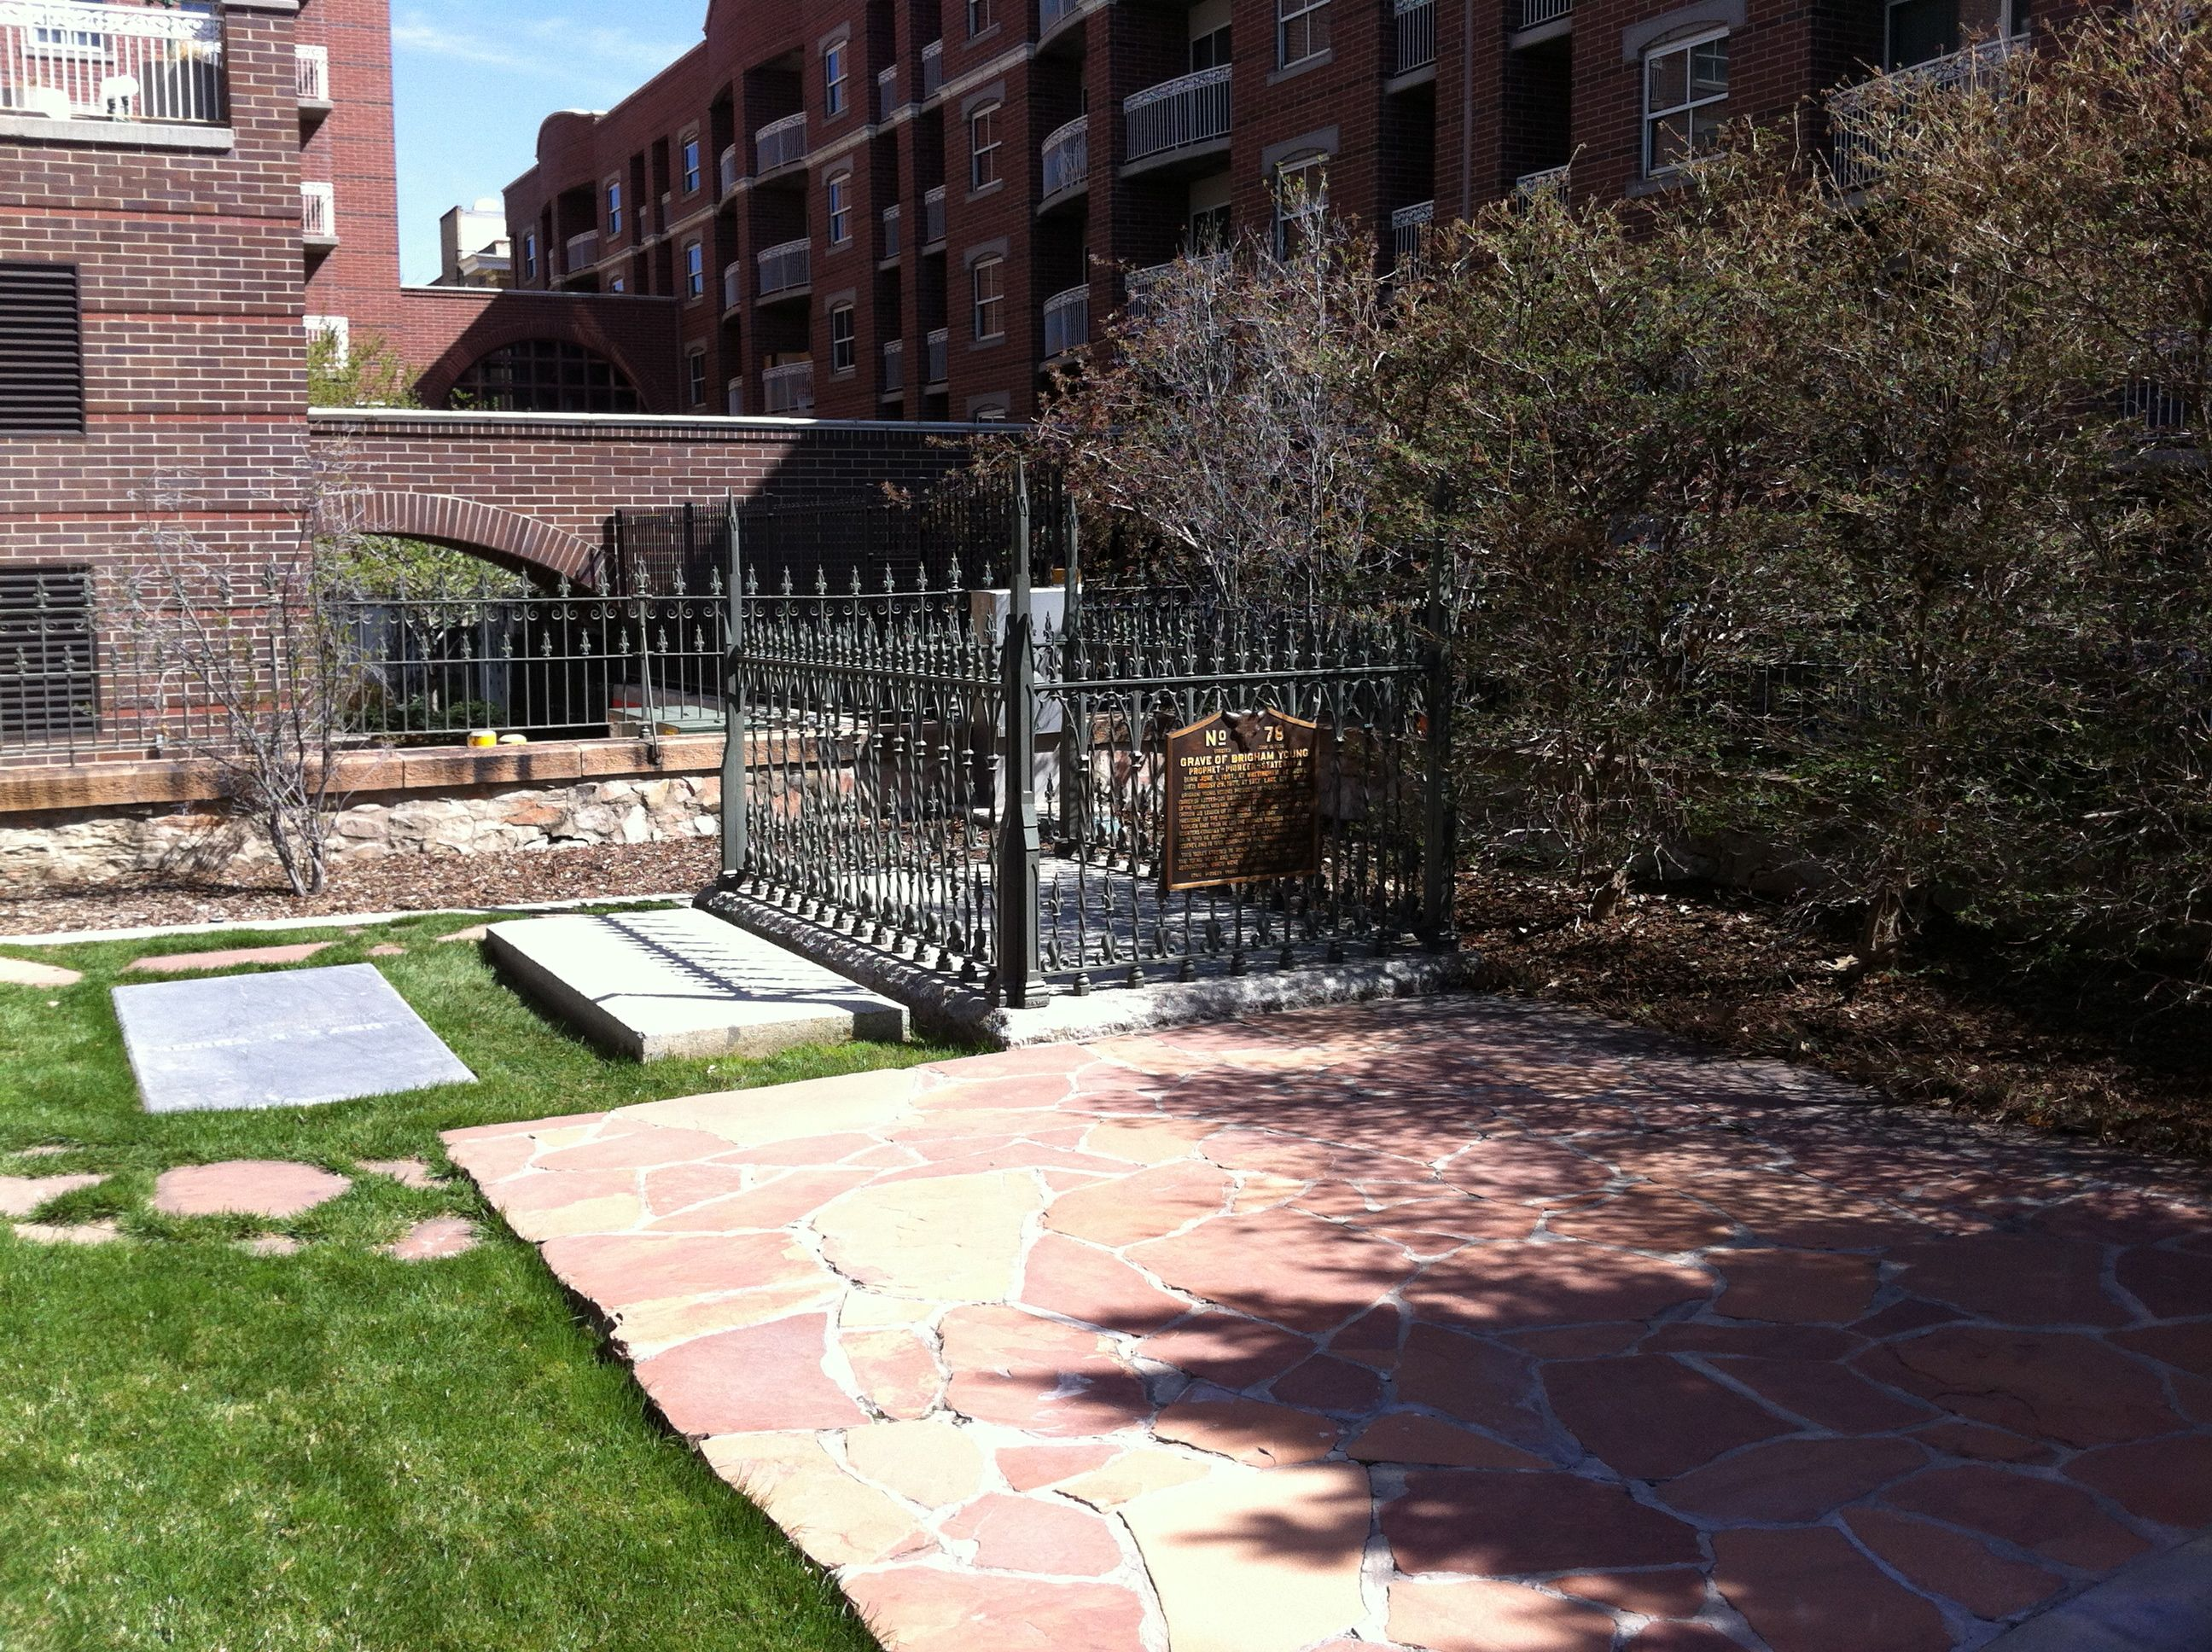 Some of the plots in the cemetery